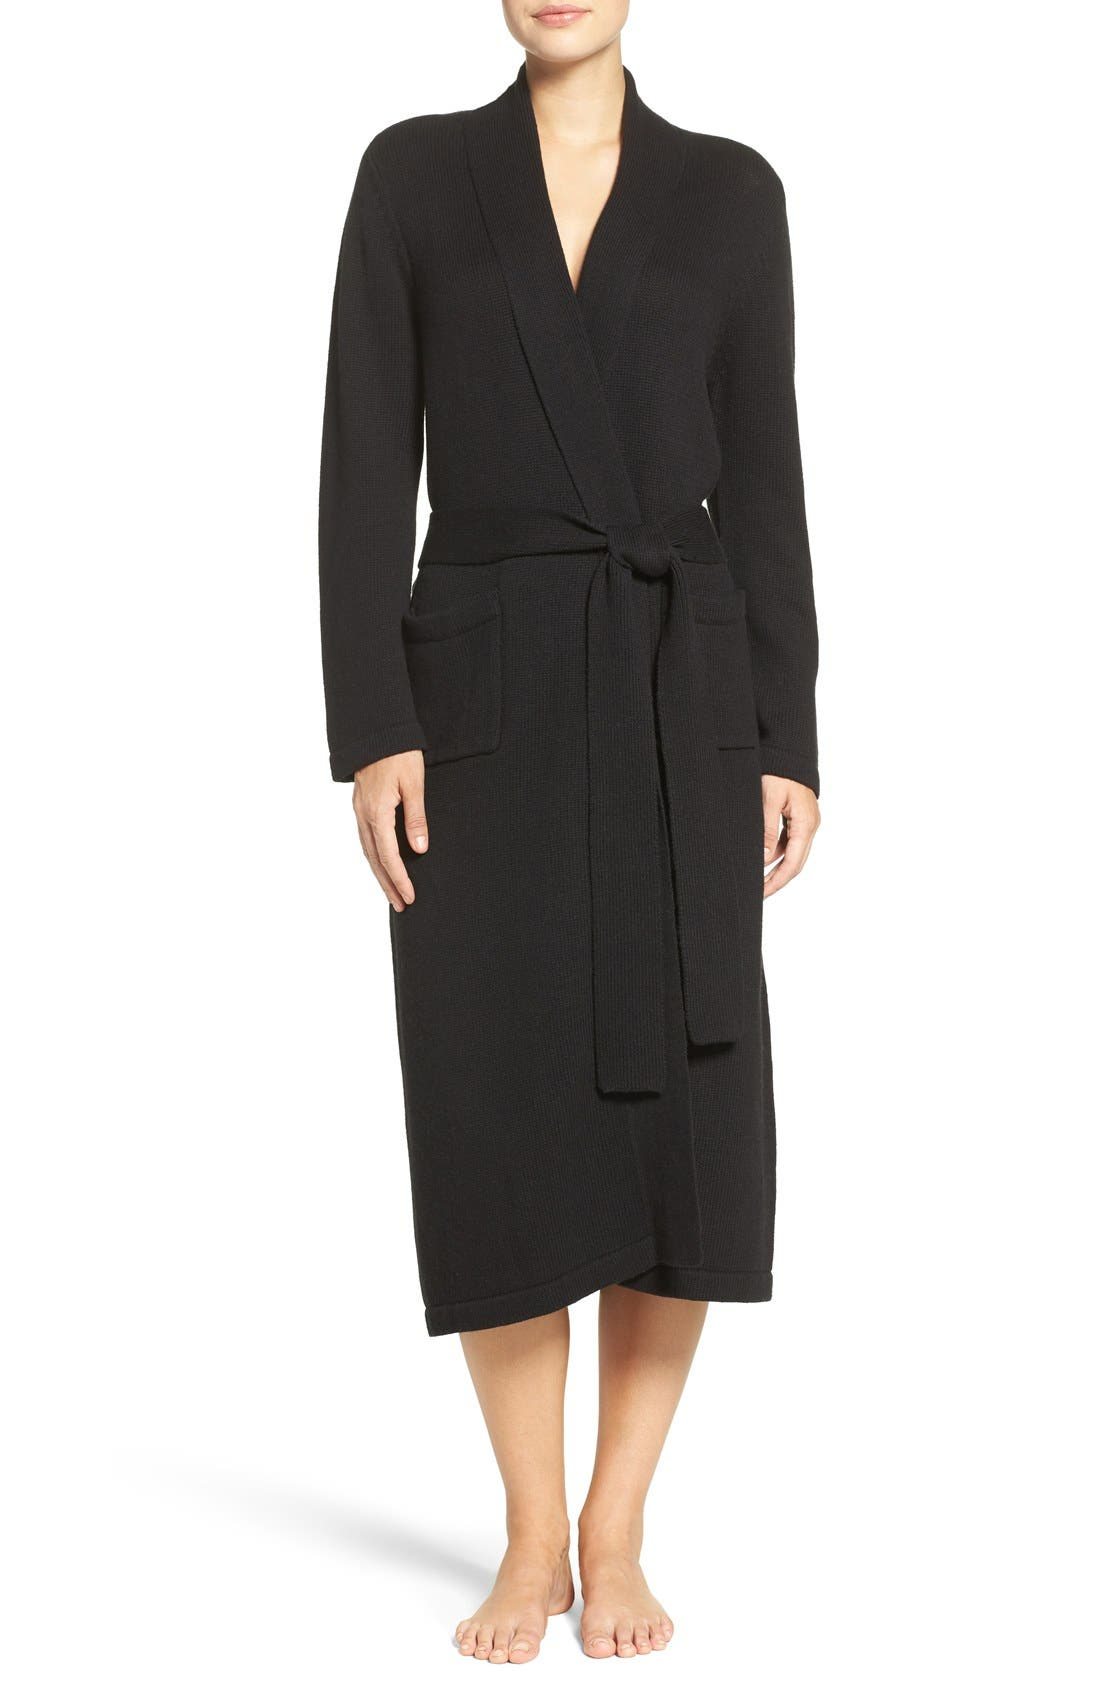 Lauren Ralph Lauren 'Ballet' Knit Cotton Blend Robe